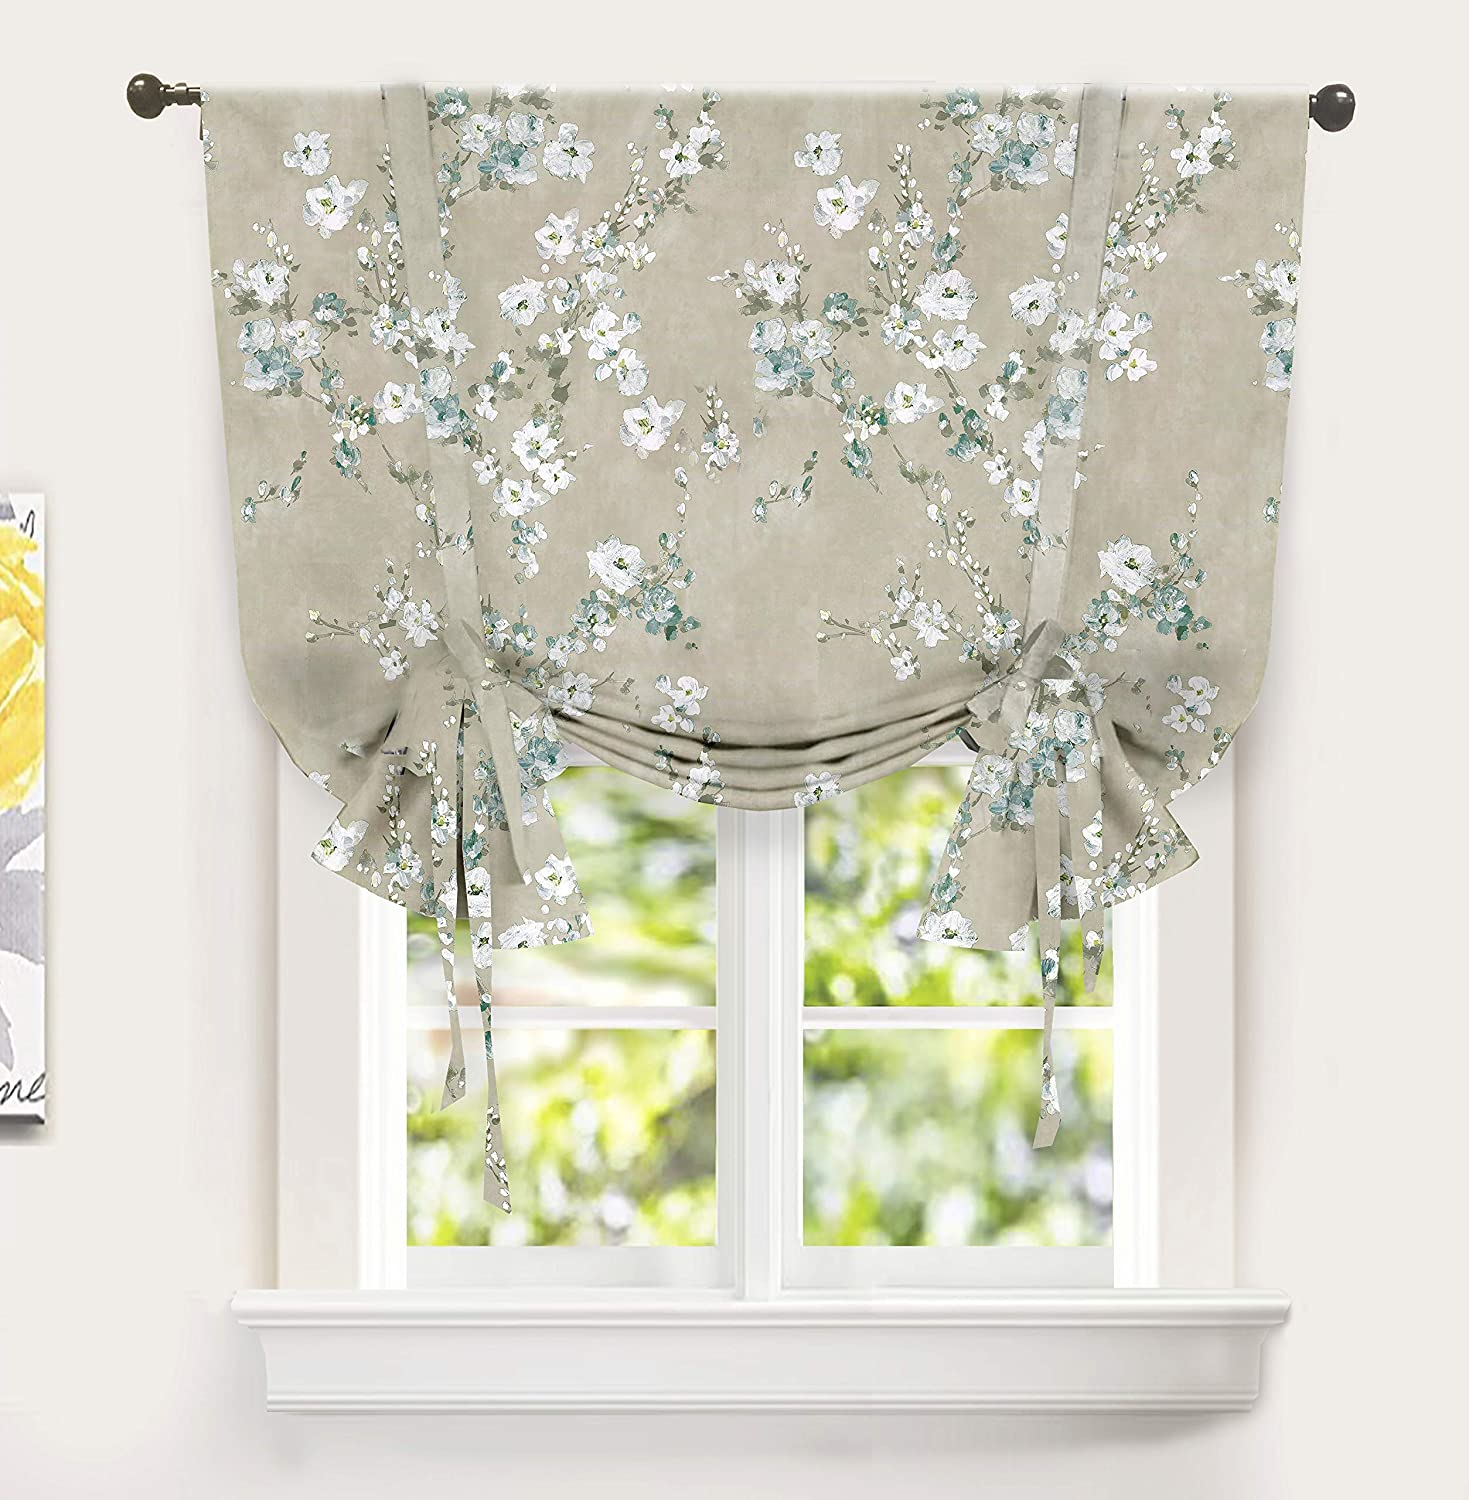 DriftAway Mackenzie Tie Up Curtain Blossom Floral Pattern Room Darkening Thermal Insulated Window Curtain Adjustable Balloon Curtain for Small Window Rod Pocket 45 Inch by 63 Inch Blue Gray